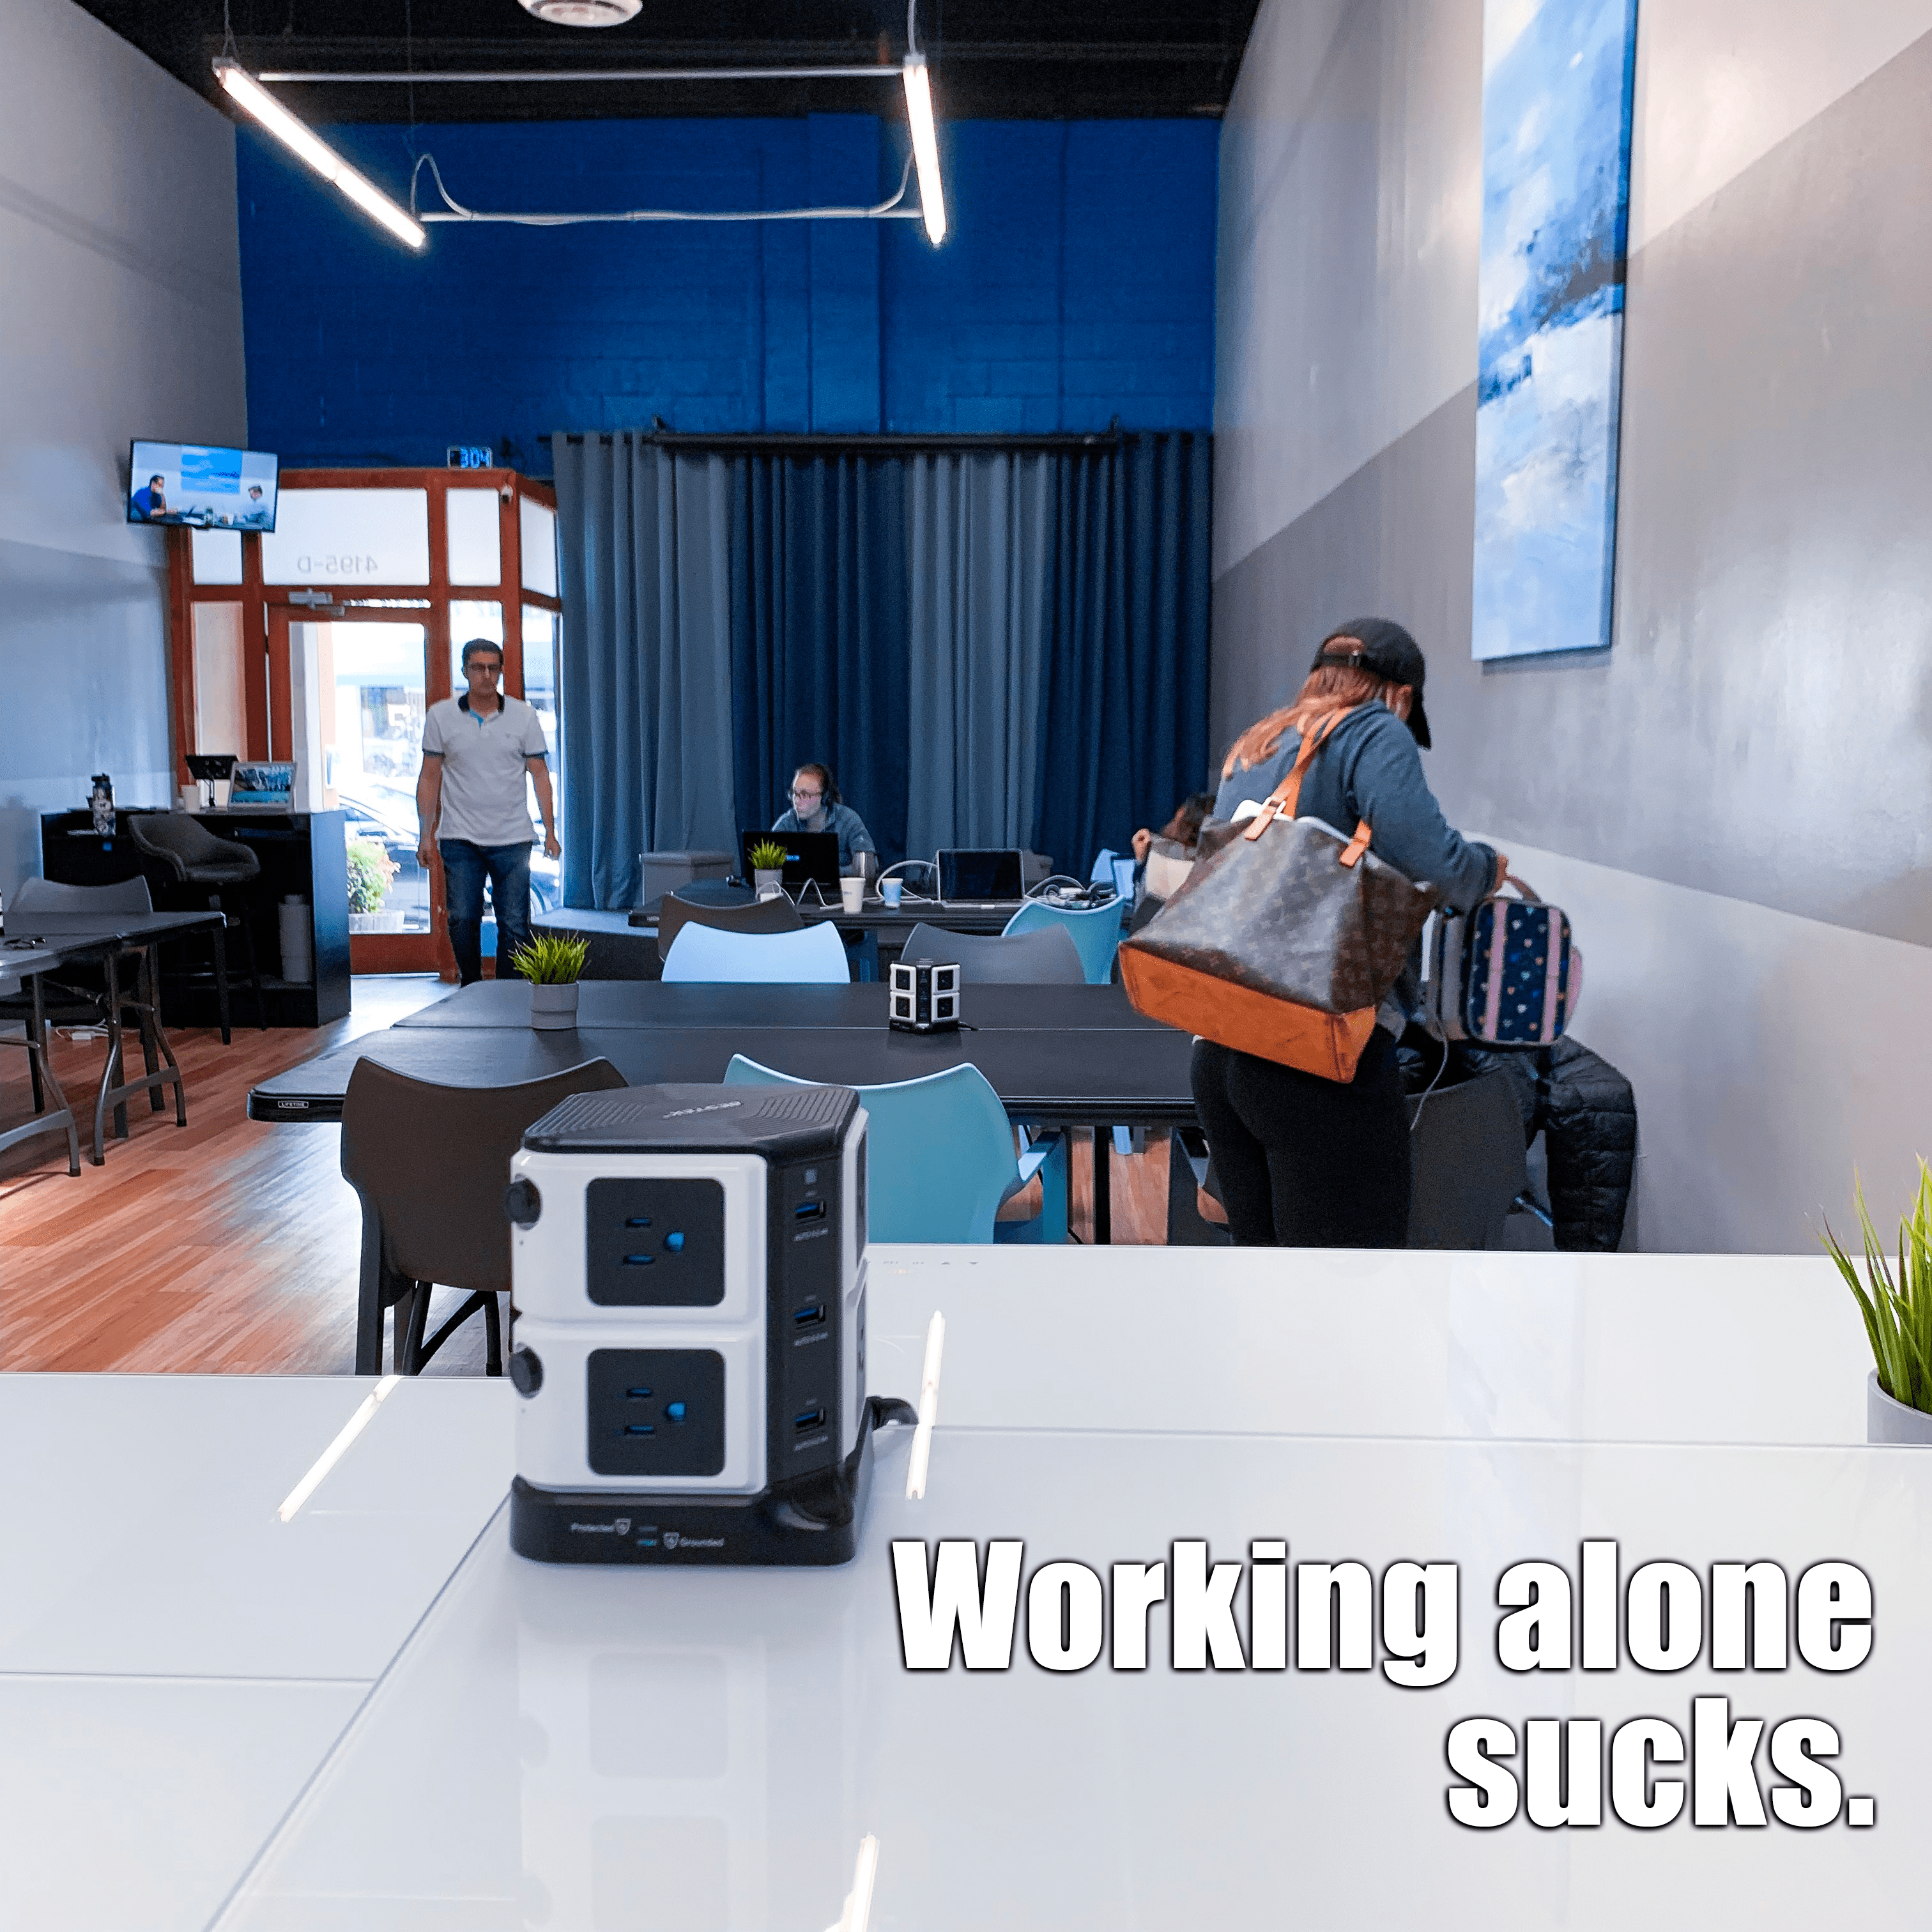 Long Beach Coworking Space With Images Coworking Space Work Space Coworking